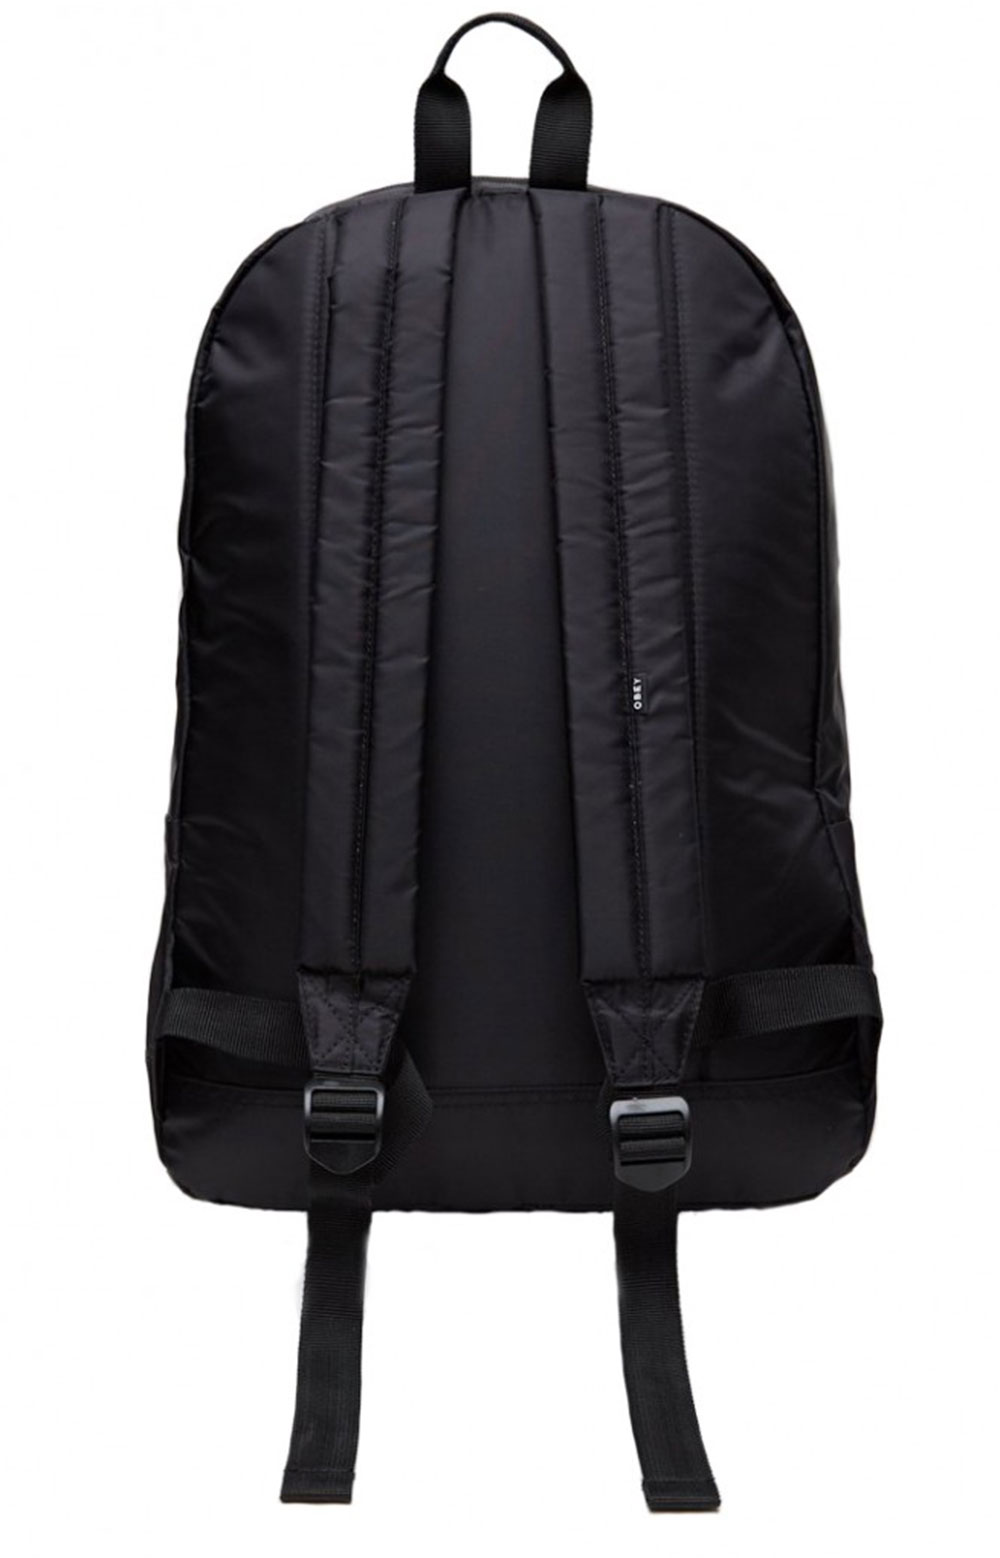 Drop Out Backpack - Black 2